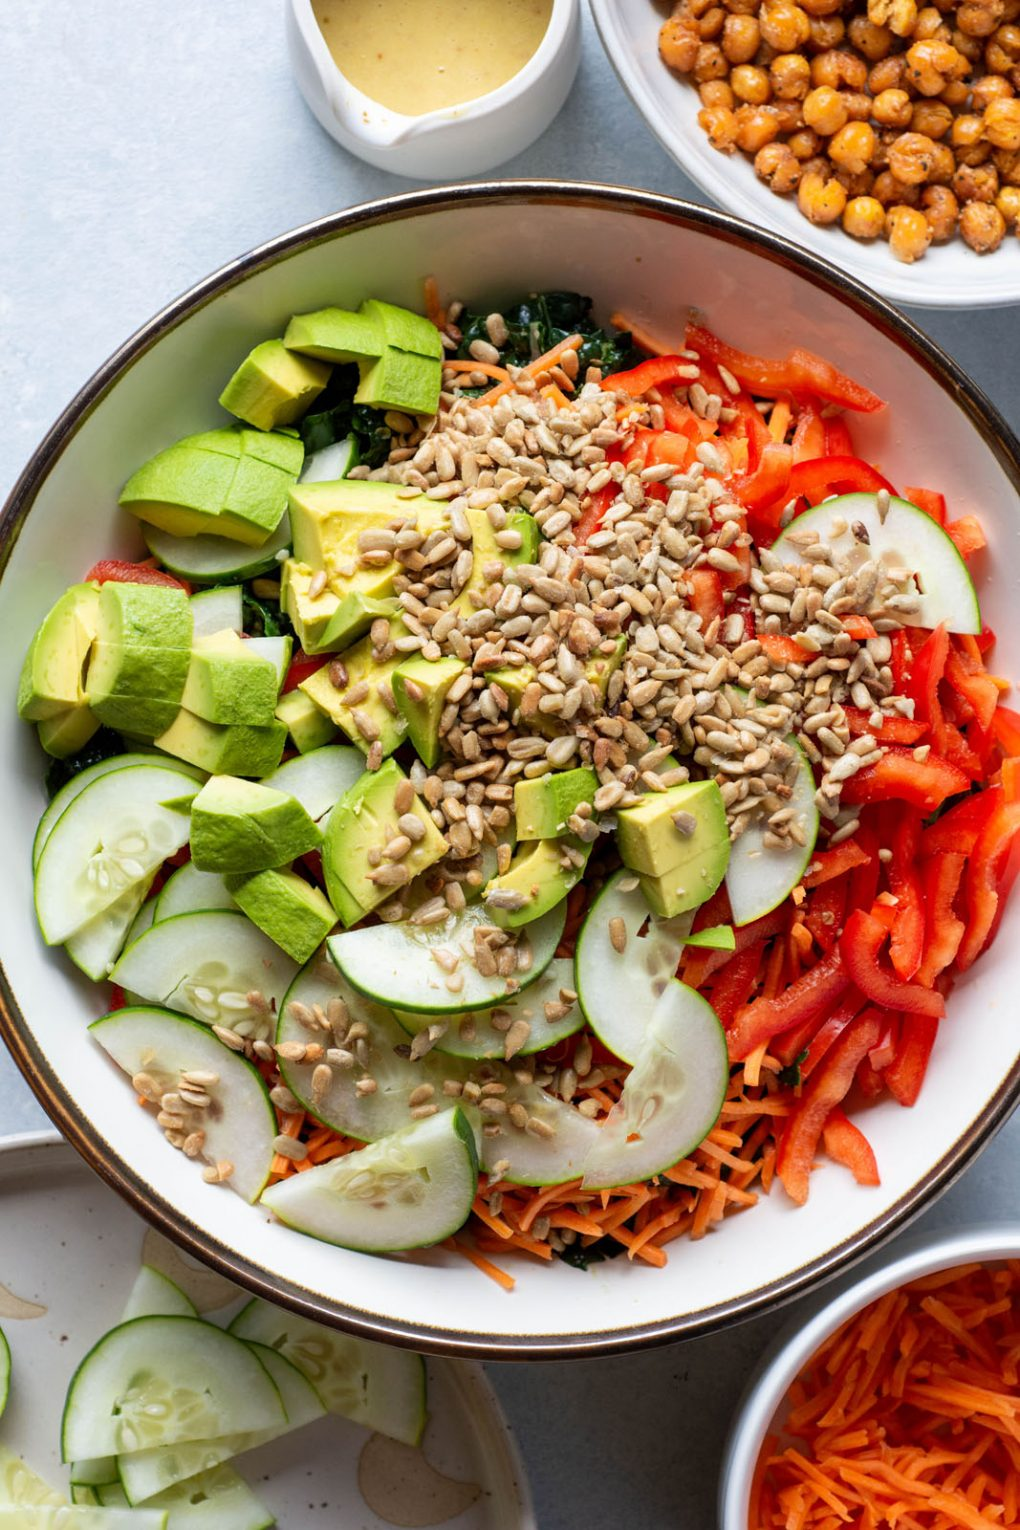 Overhead shot of a large white bowl filled with thinly sliced kale, sliced red pepper, shredded carrots, cucumbers cut into half moon slices, diced avocado, and roasted sunflower seeds. On a white background surrounded by a bowl of crispy chickpeas, a bowl of shredded carrots, and a plate of sliced cucumber.